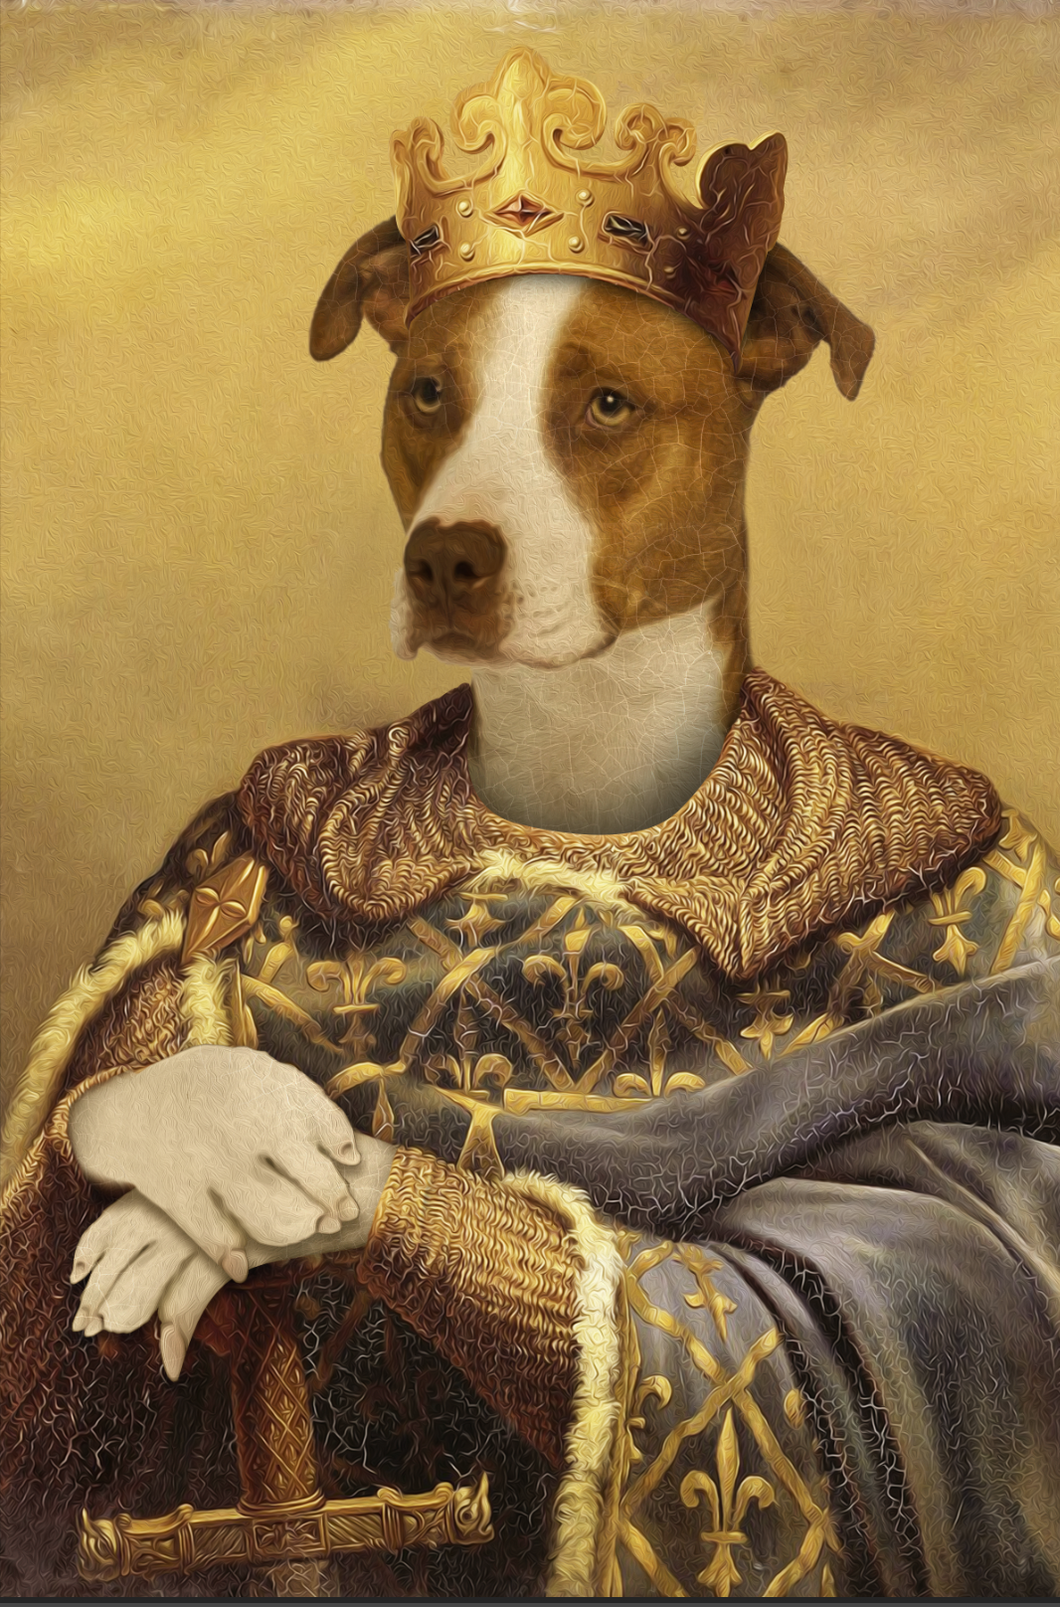 The Noble Warrior Custom Pet Portrait Digital Download - Noble Pawtrait